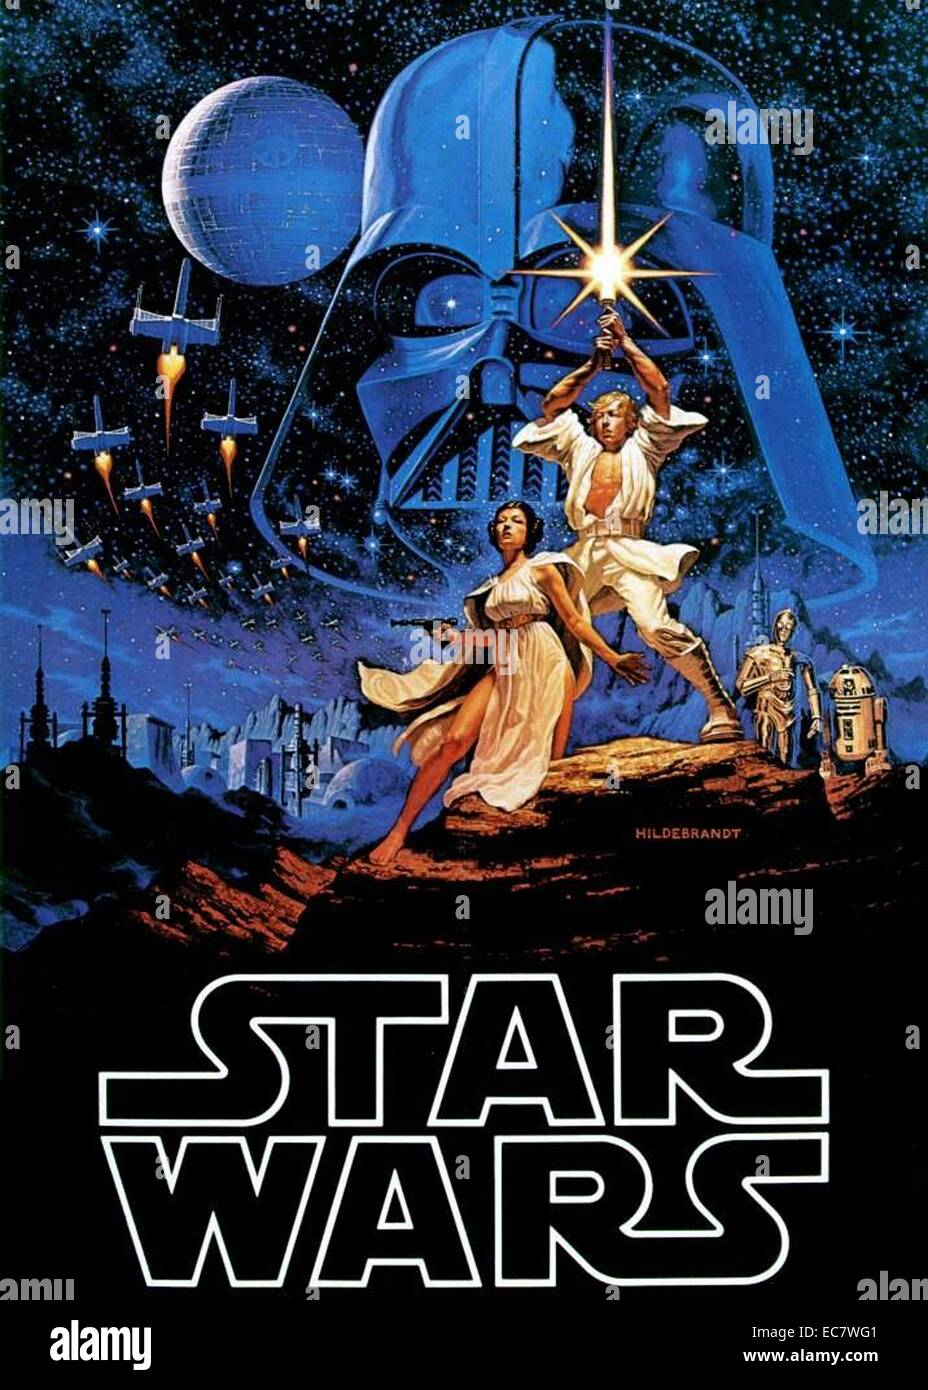 Star Wars Poster High Resolution Stock Photography And Images Alamy